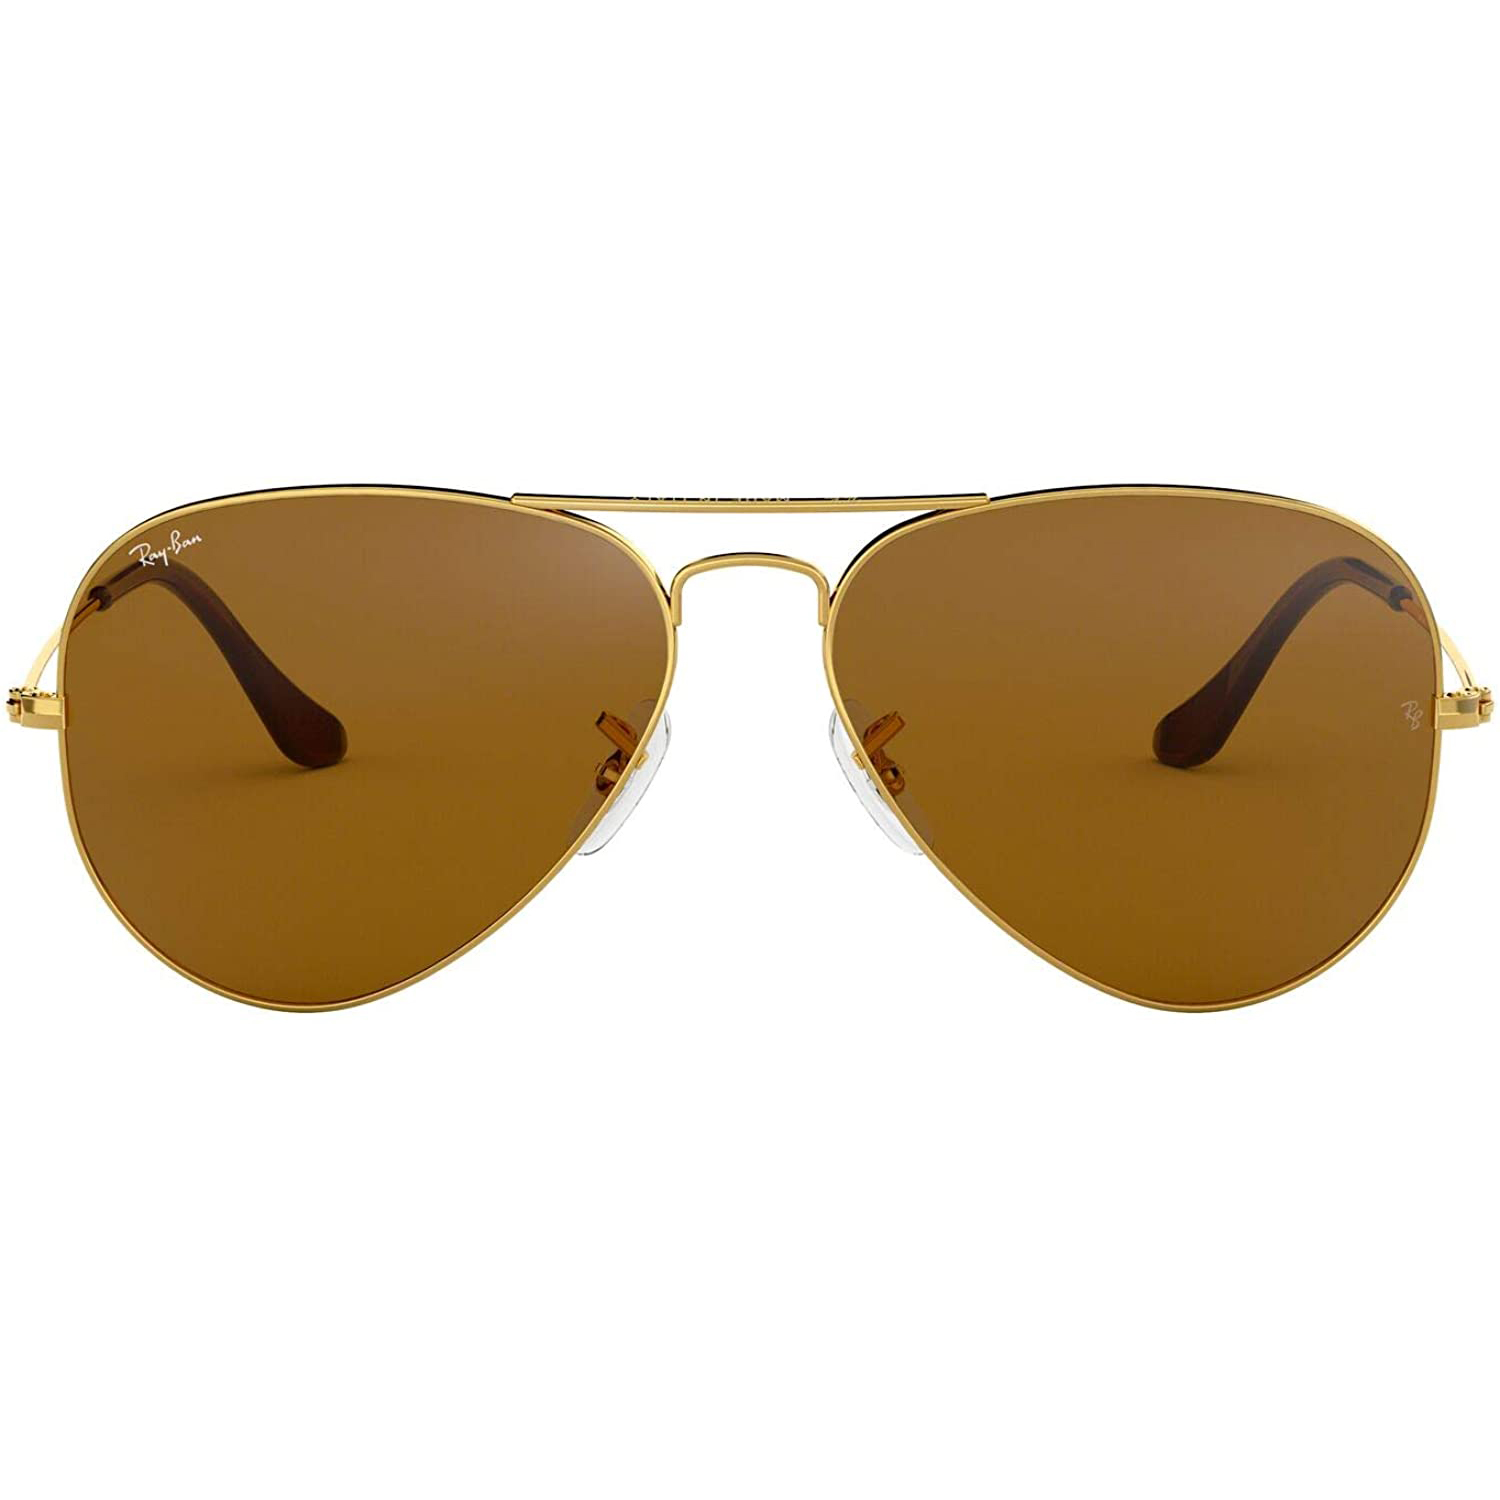 Ray Ban polarized sunglasses, gifts for wife